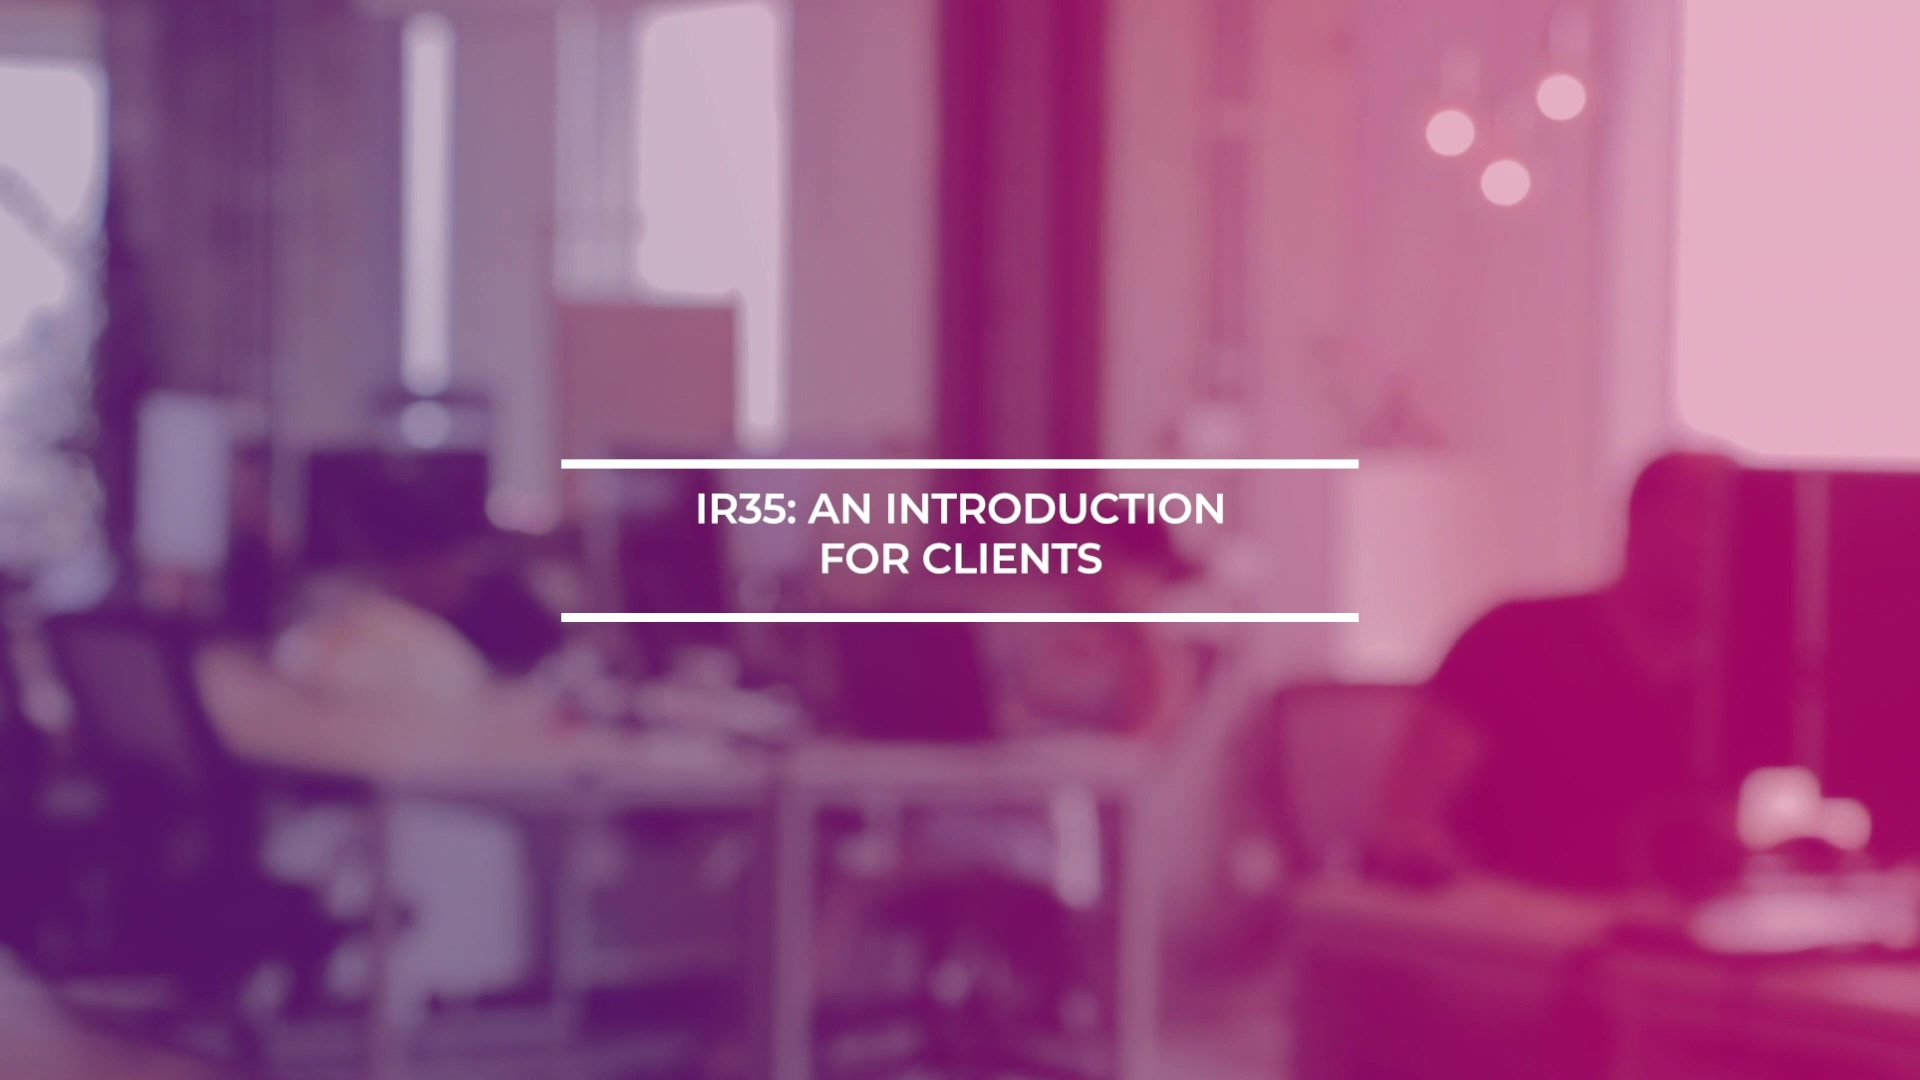 Introduction For Clients